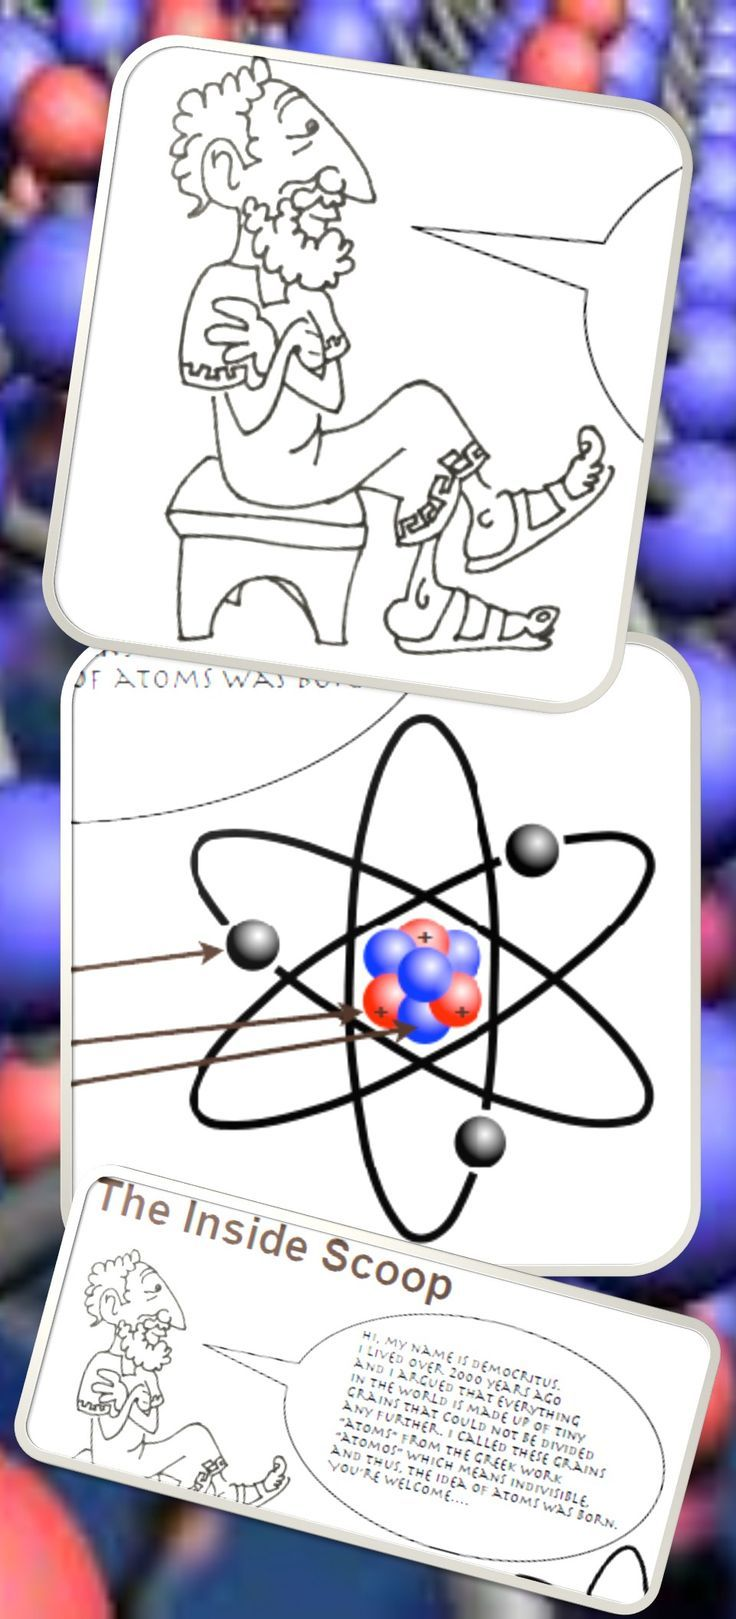 Fun and engaging worksheet for atomic structure. Covers